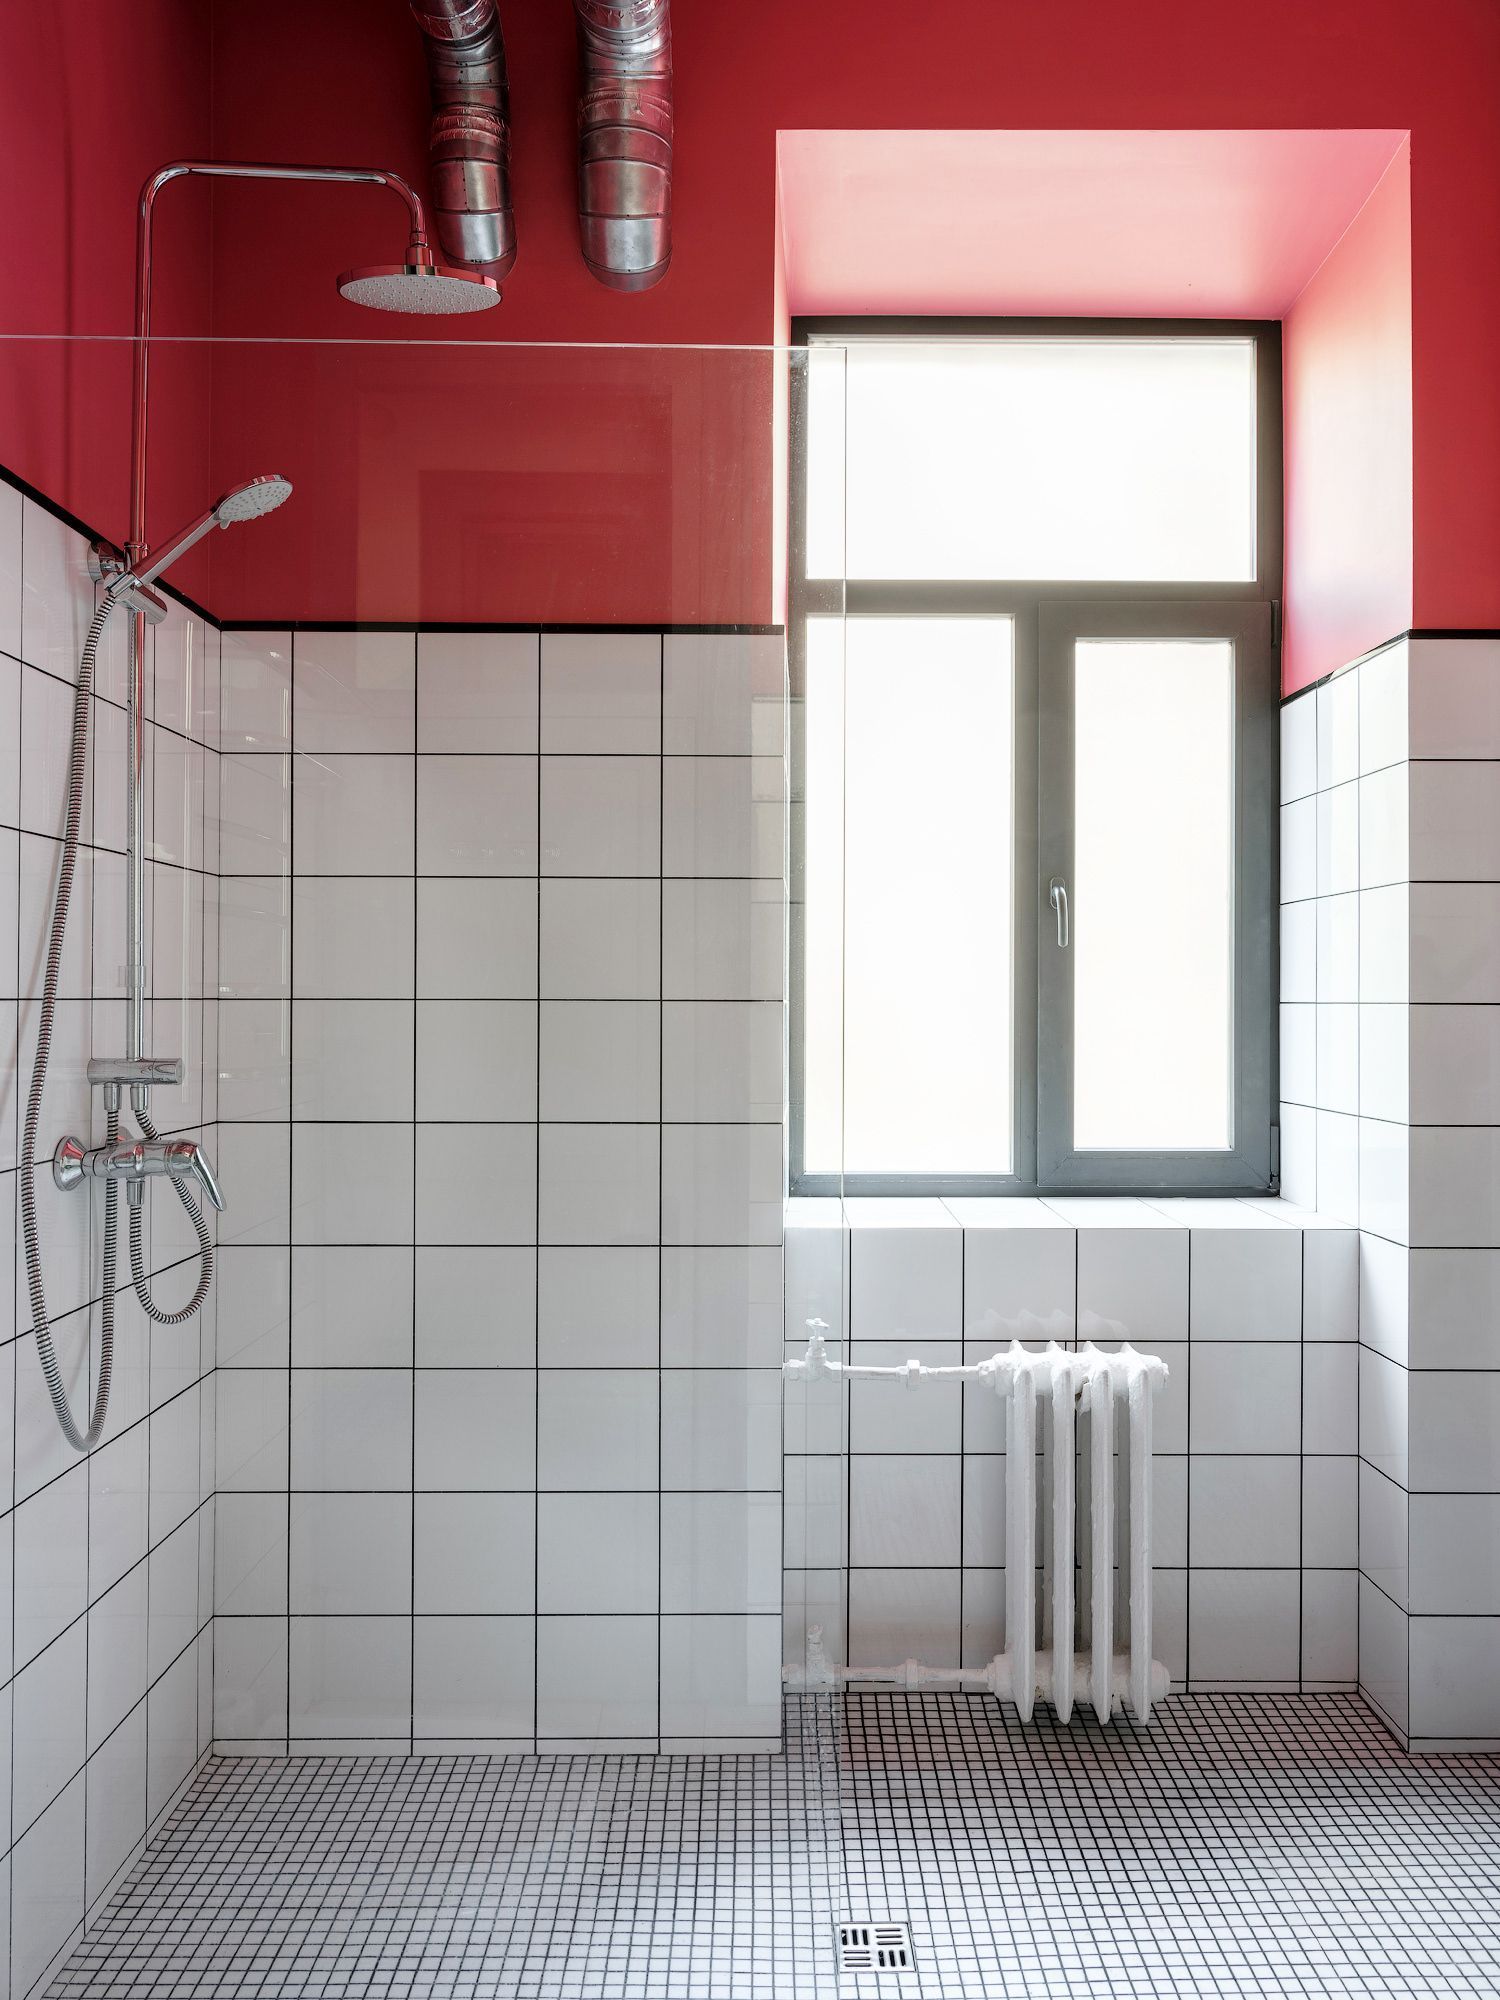 Small Comfort Room Tiles Design: 31 Design Ideas That Will Make Small Bathrooms Feel So